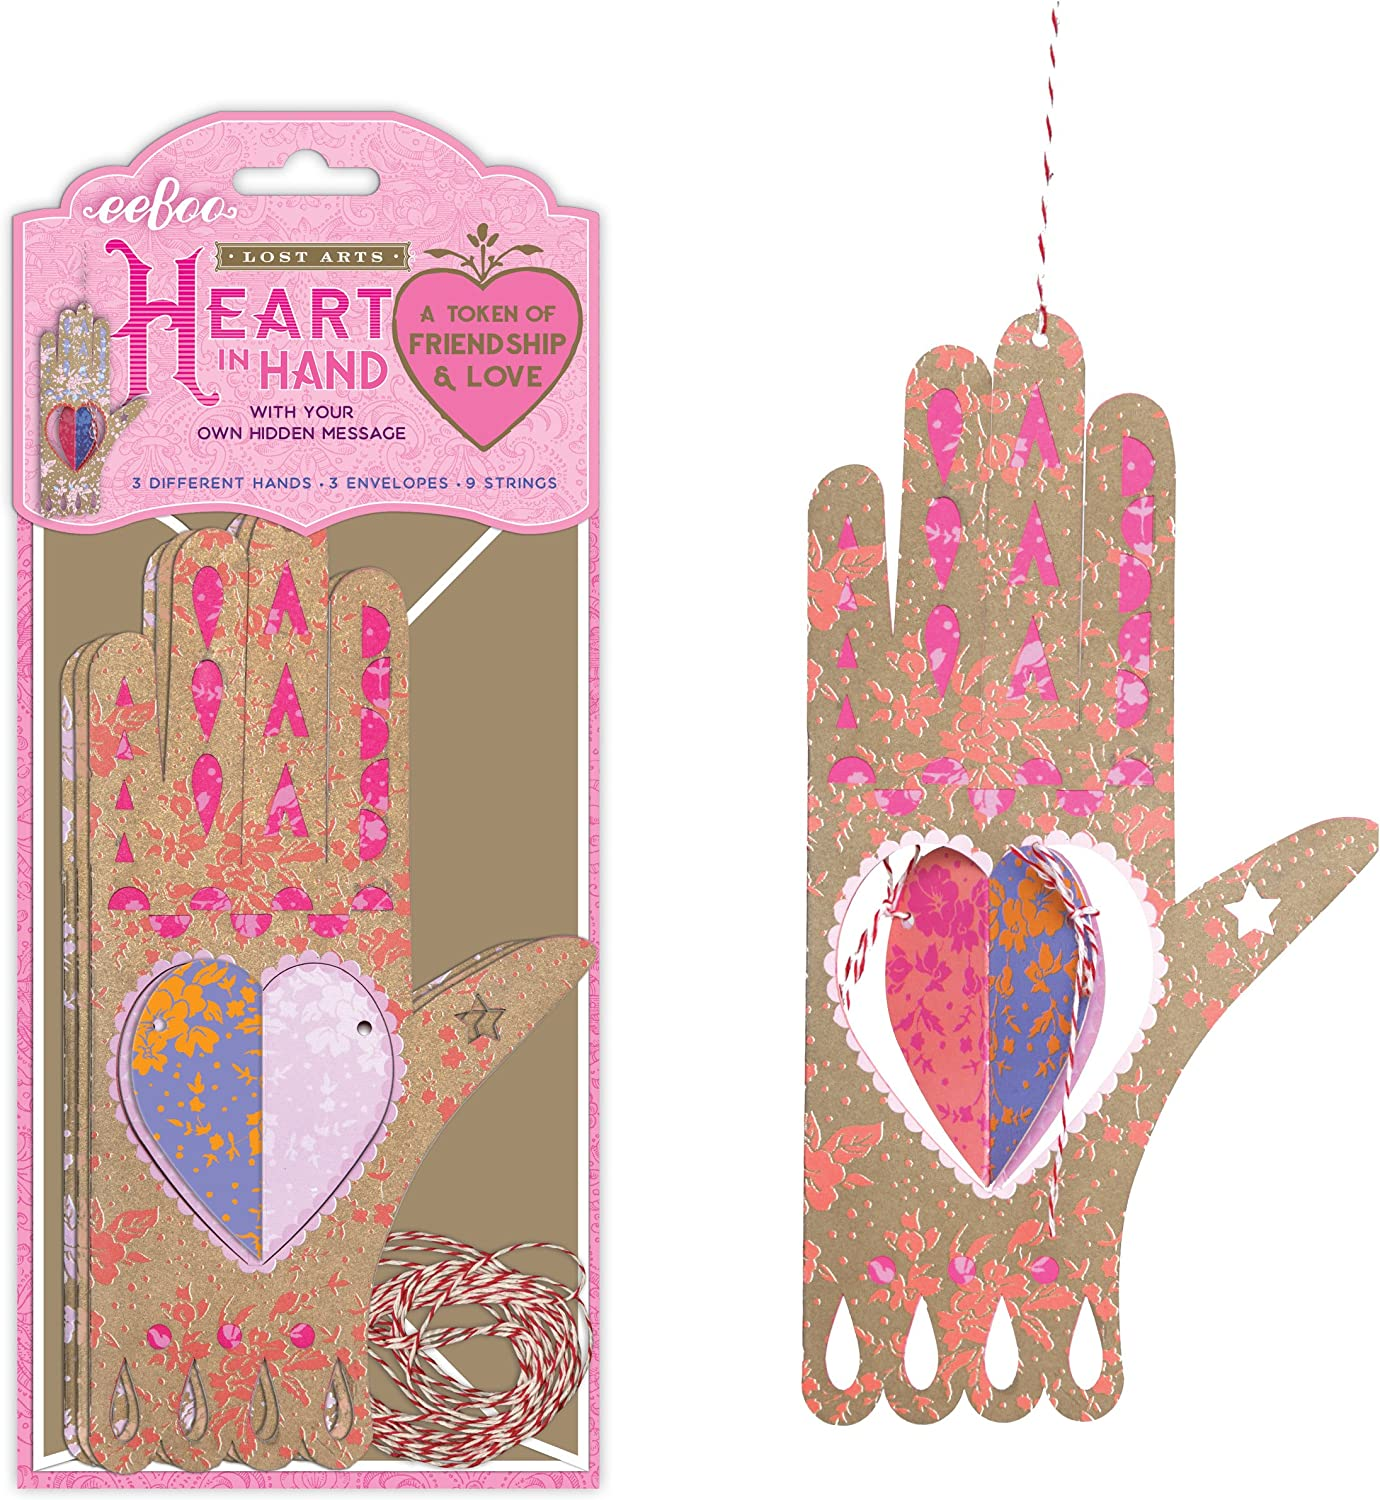 Woven Heart eeBoo Lost Arts Valentine Token